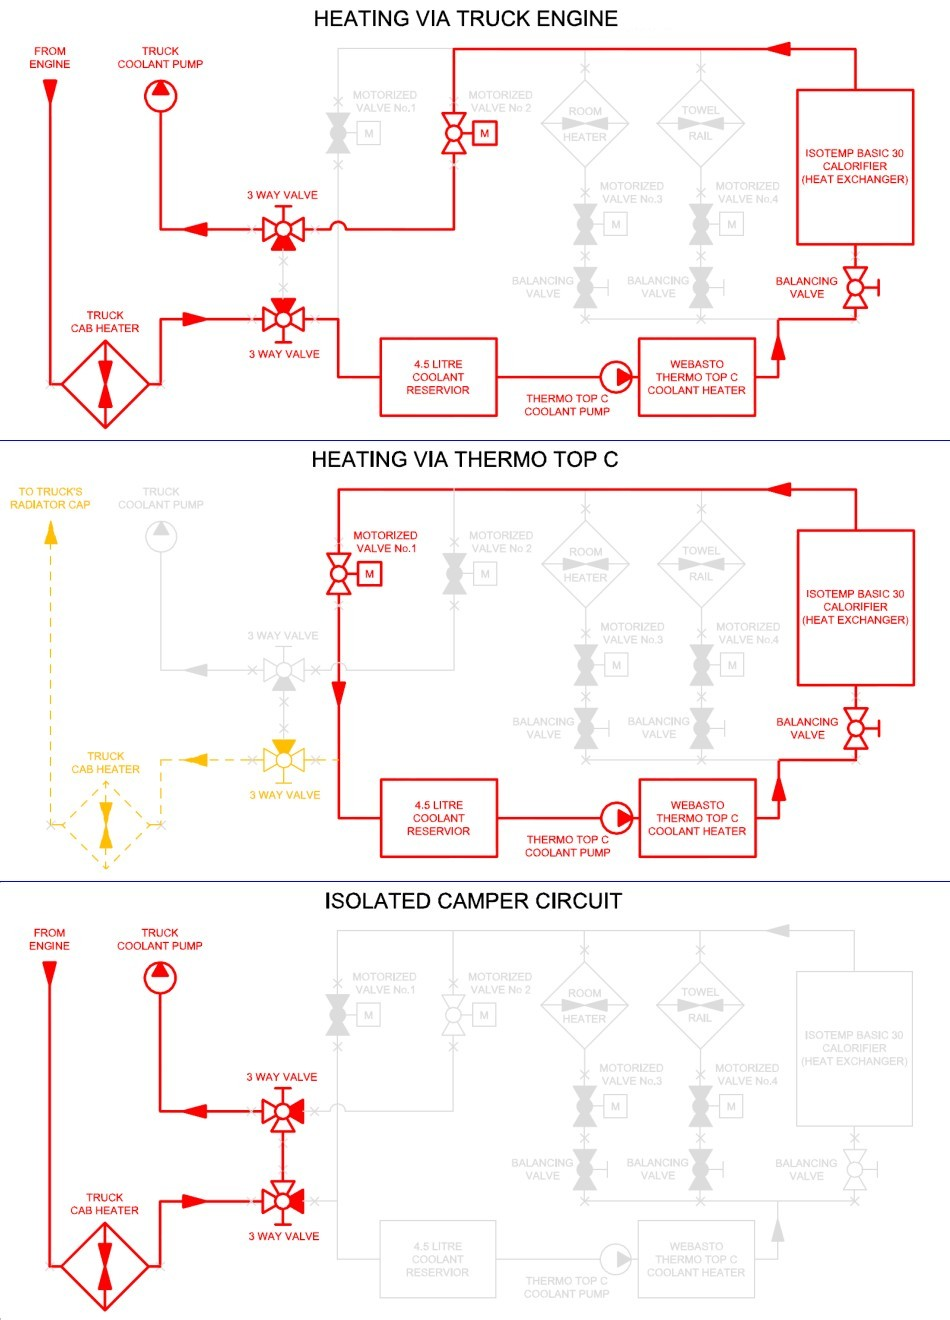 heating_schematic_s heating water & camper webasto thermo top c wiring diagram at nearapp.co